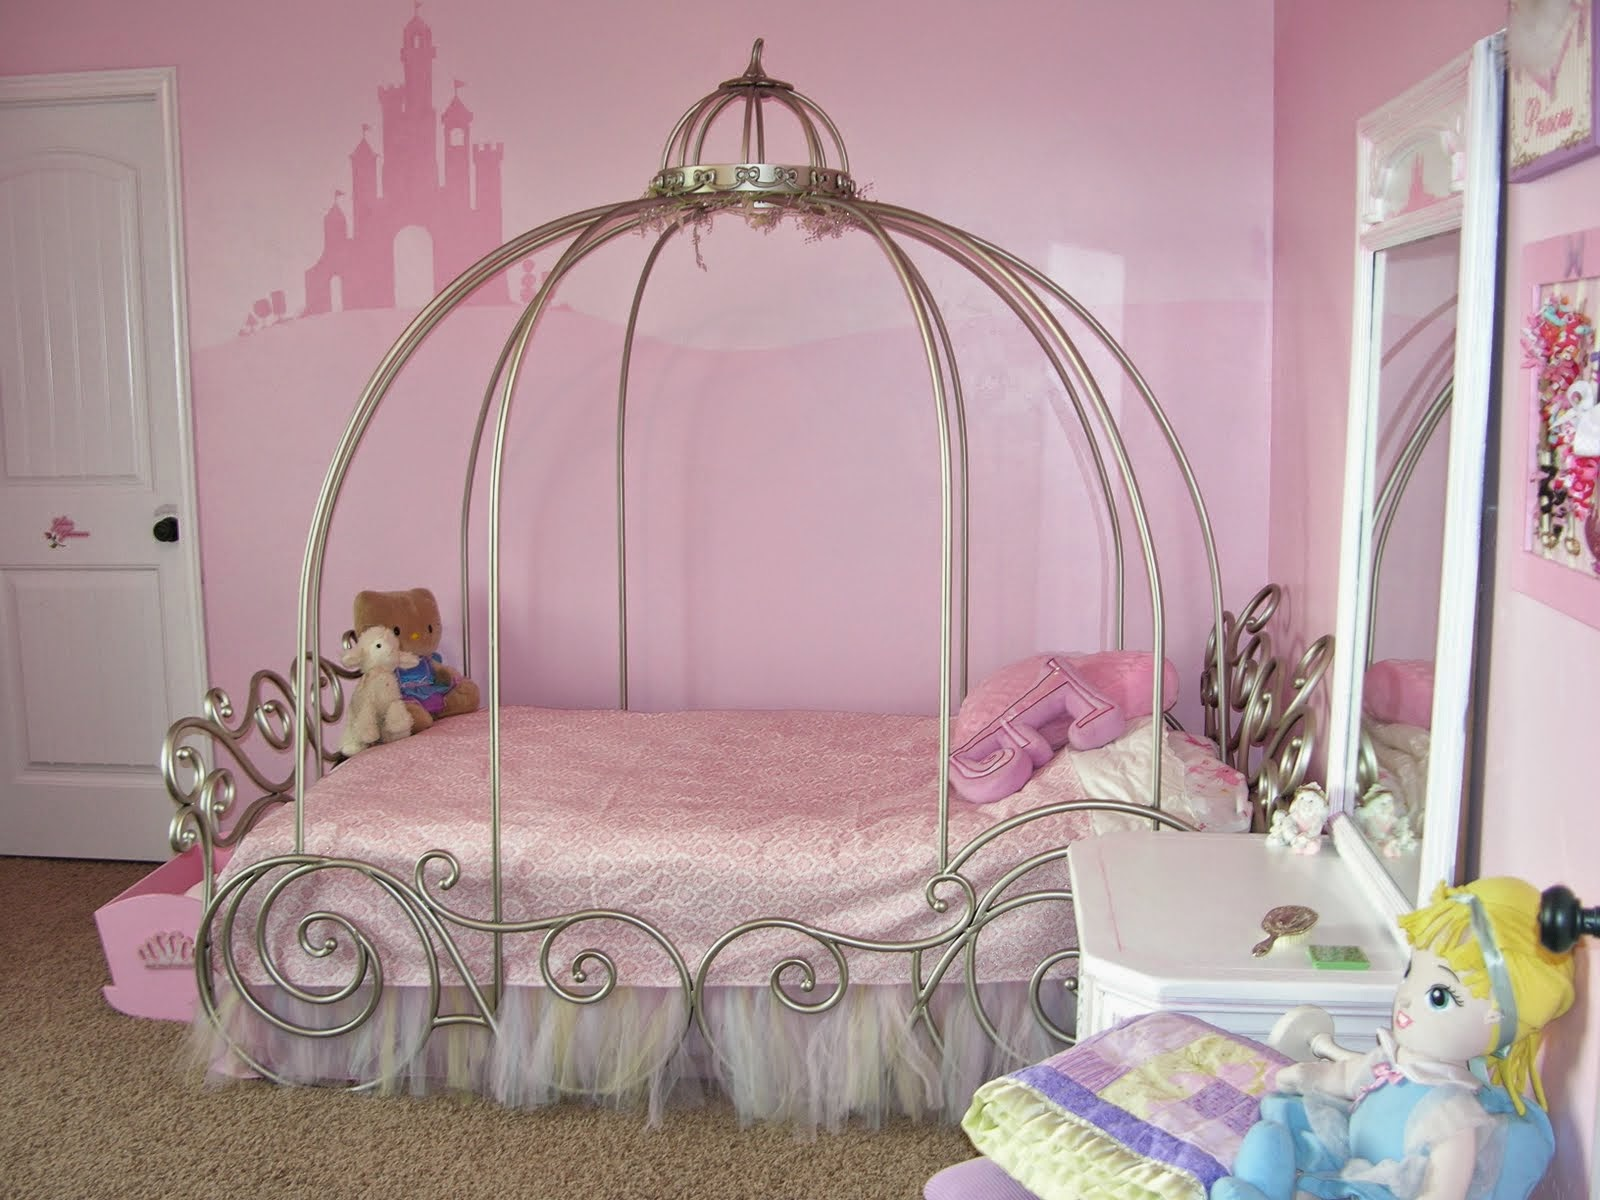 20 Little Girl 39 S Bedroom Decorating Ideas